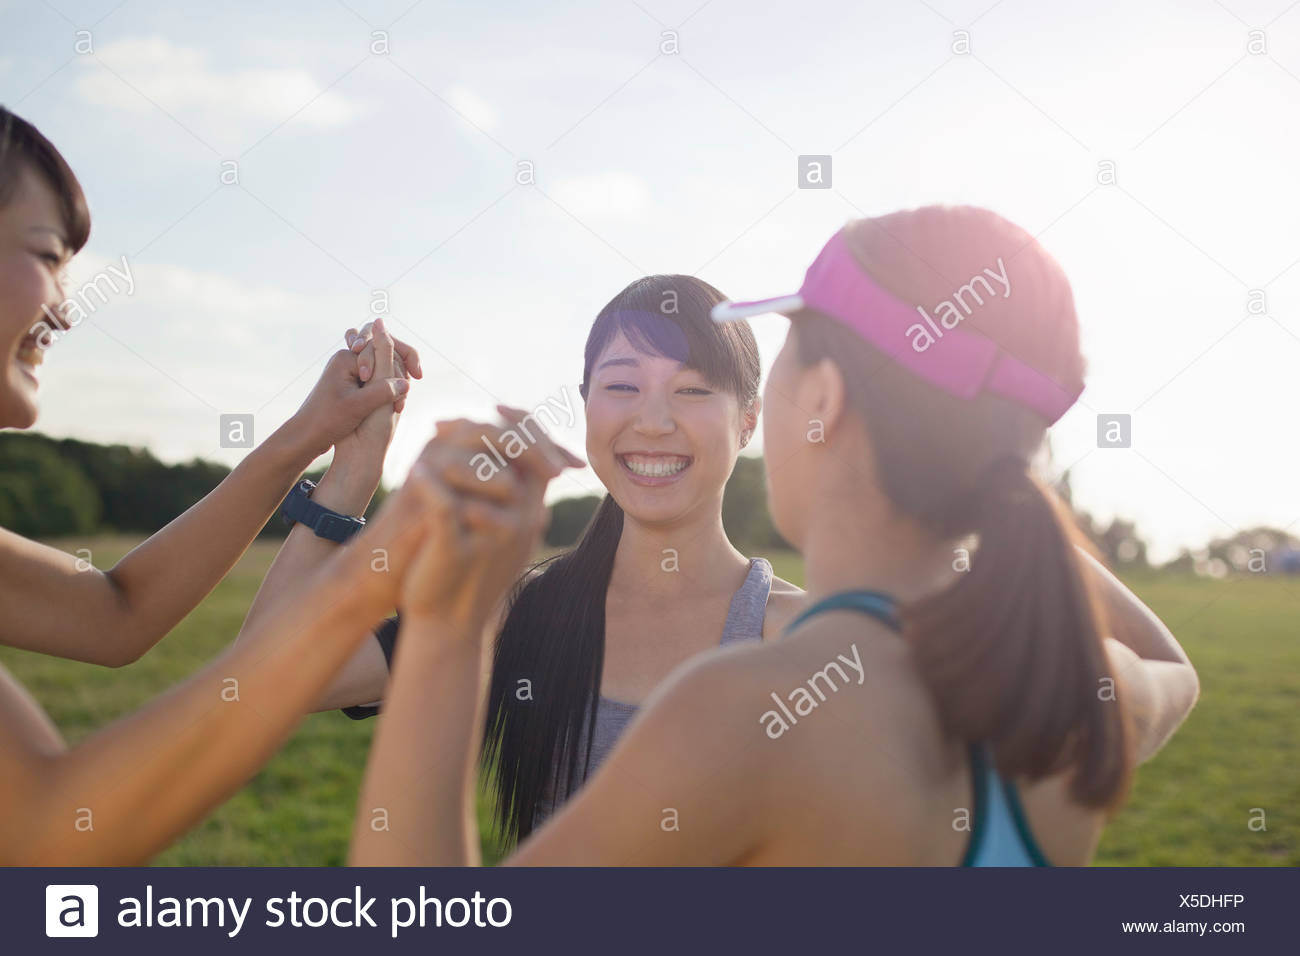 Three young female runners getting ready to run - Stock Image